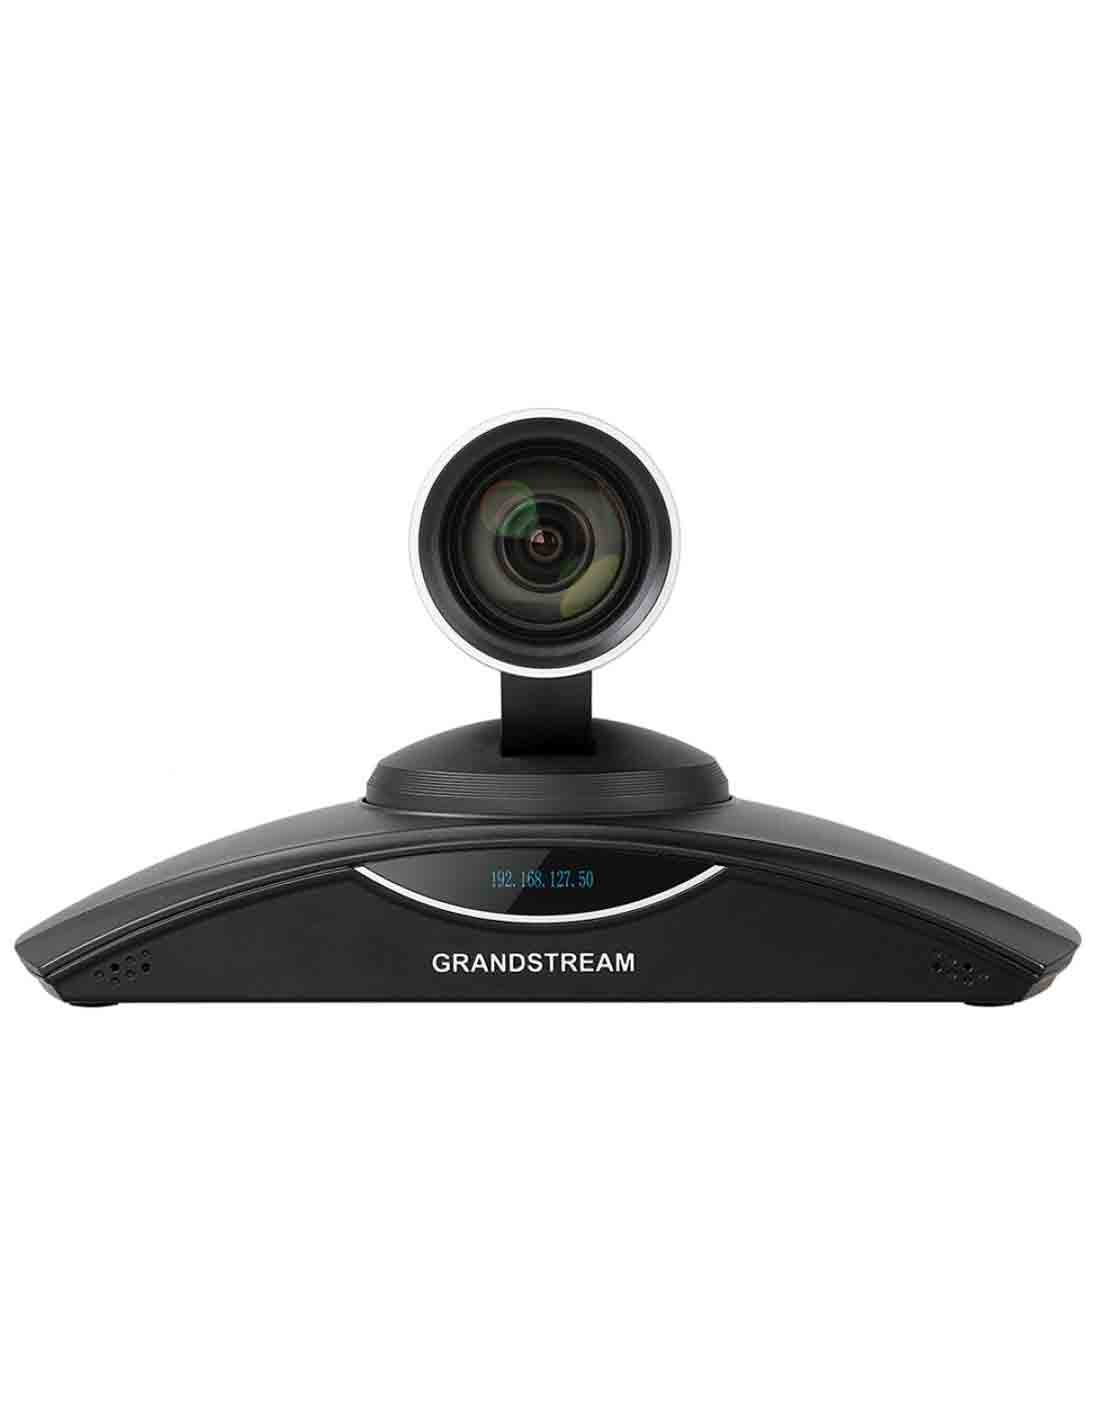 Grandstream GVC3202 SIP/Android Video Conferencing Solution in Dubai at a cheap price and free delivery in Dubai